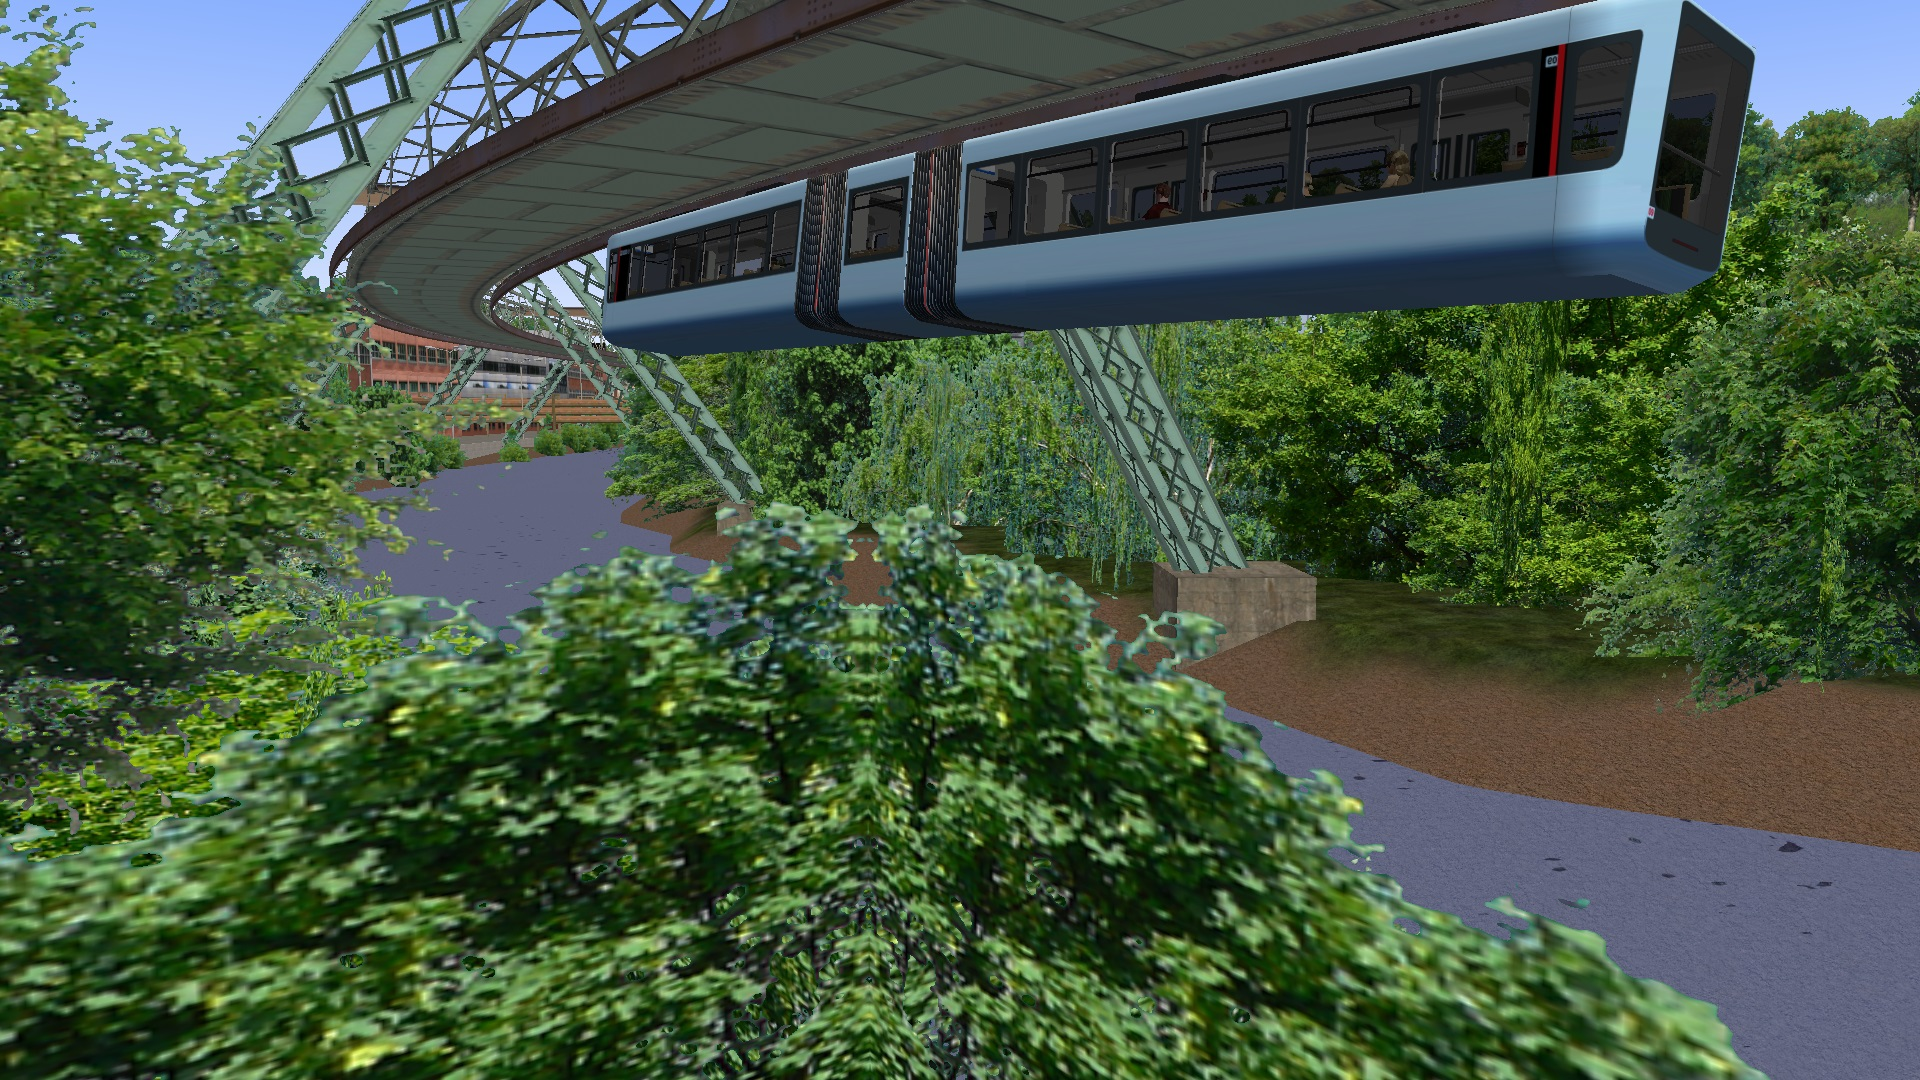 OMSI 2 gets Wuppertal expansion with suspended monorail | Rock Paper